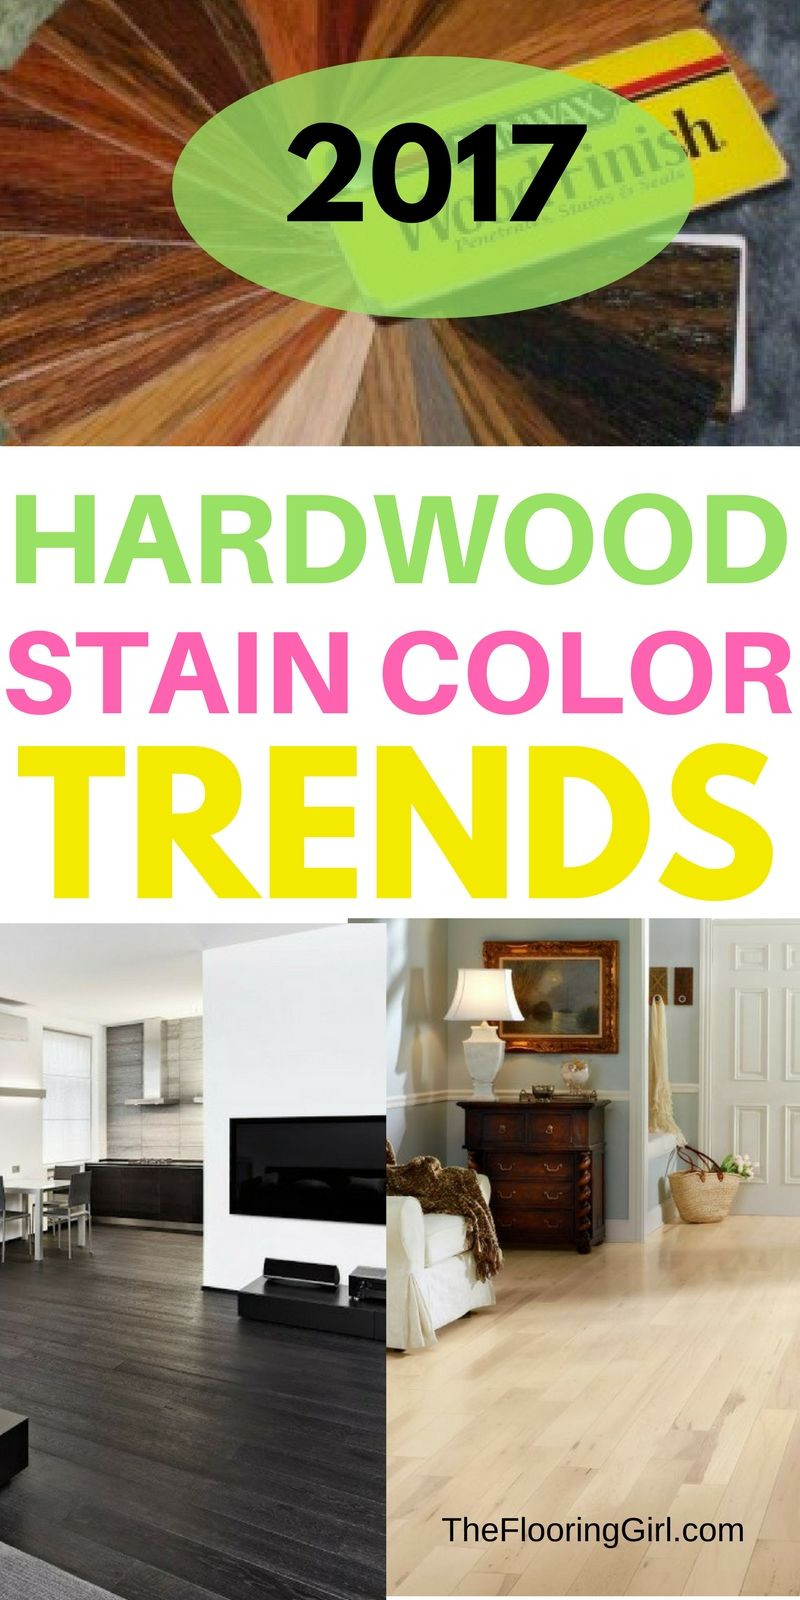 How Hard is It to Sand and Refinish Hardwood Floors Of Hardwood Flooring Stain Color Trends 2018 More From the Flooring Intended for Hardwood Flooring Stain Color Trends for 2017 Hardwood Colors that are In Style theflooringgirl Com